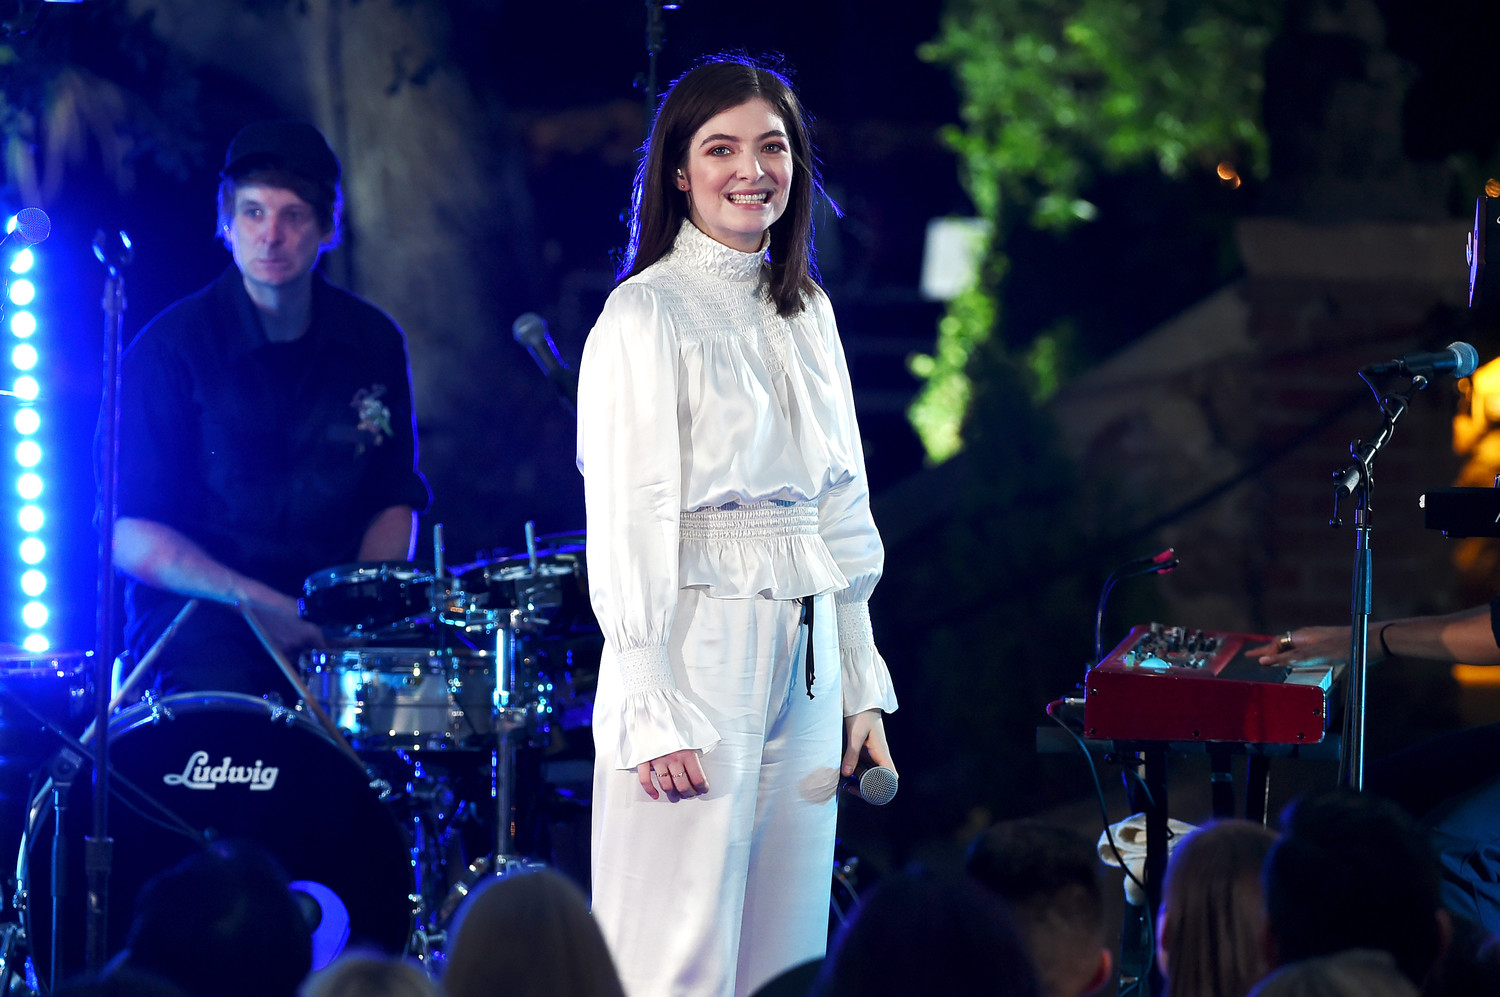 Lorde, pop singer from New Zealand, performs during the iHeartRadio Secret Sessions by AT&T at the Houdini Estate on Aug. 29, 2017, in Los Angeles.